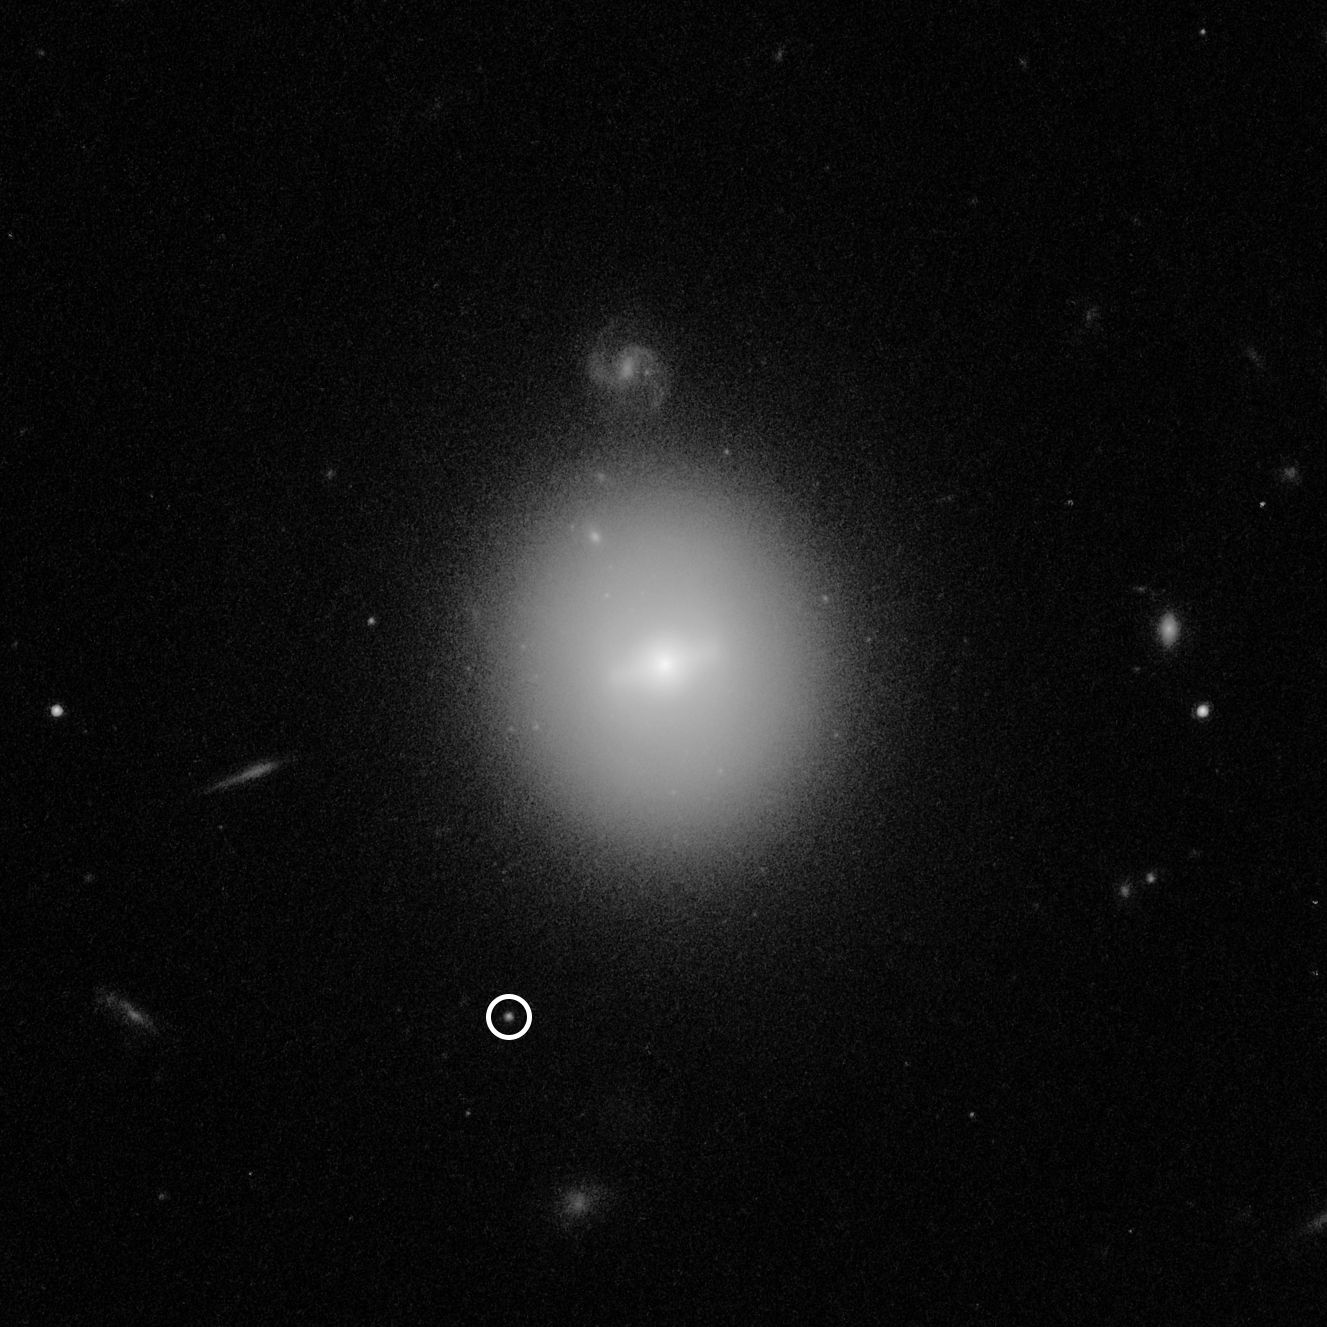 This Hubble Space Telescope image identified the location of an intermediate-mass black hole, weighing 50,000 times the mass of our Sun (making it much smaller than supermassive black holes found in the centers of galaxies). The black hole, named 3XMM J215022.4?055108, is indicated by the white circle. The elusive type of black hole was first identified in a burst of telltale X-rays emitted by hot gas from a star as it was captured and destroyed by the black hole. Hubble was needed to pinpoint the black hole's location in visible light. Hubble's deep, high-resolution imaging shows that the black hole resides inside a dense cluster of stars that is far beyond our Milky Way galaxy. The star cluster is in the vicinity of the galaxy at the center of the image. Much smaller-looking background galaxies appear sprinkled around the image, including a face-on spiral just above the central foreground galaxy. This photo was taken with Hubble's Advanced Camera for Surveys. (Image: NASA, ESA and D. Lin (University of New Hampshire))